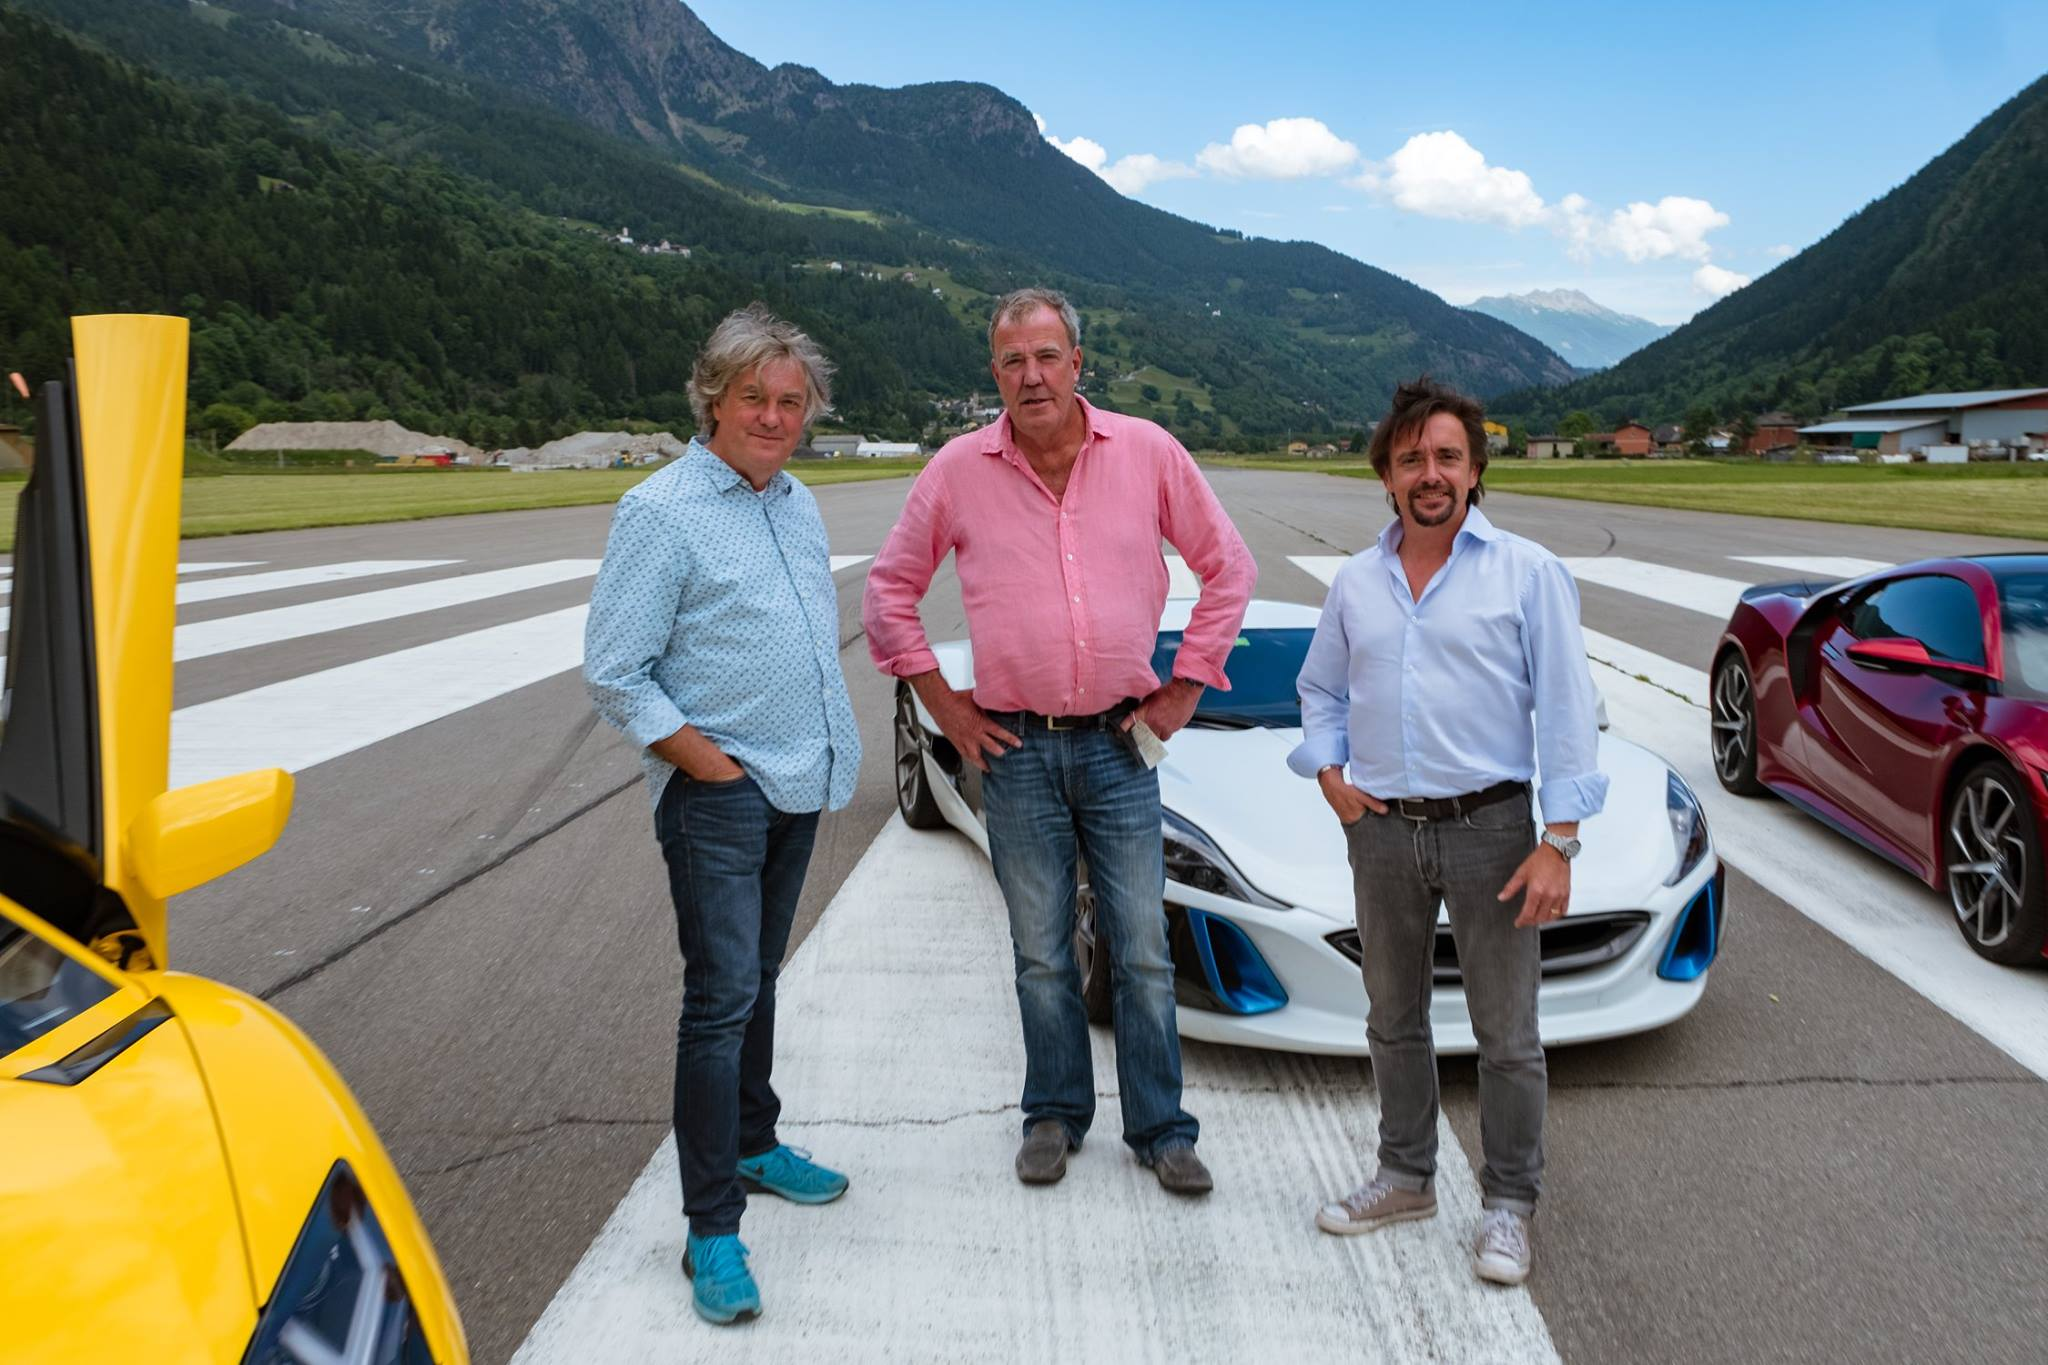 THE GRAND TOUR: LE PREMIER ÉPISODE TOURNÉ EN SUISSE